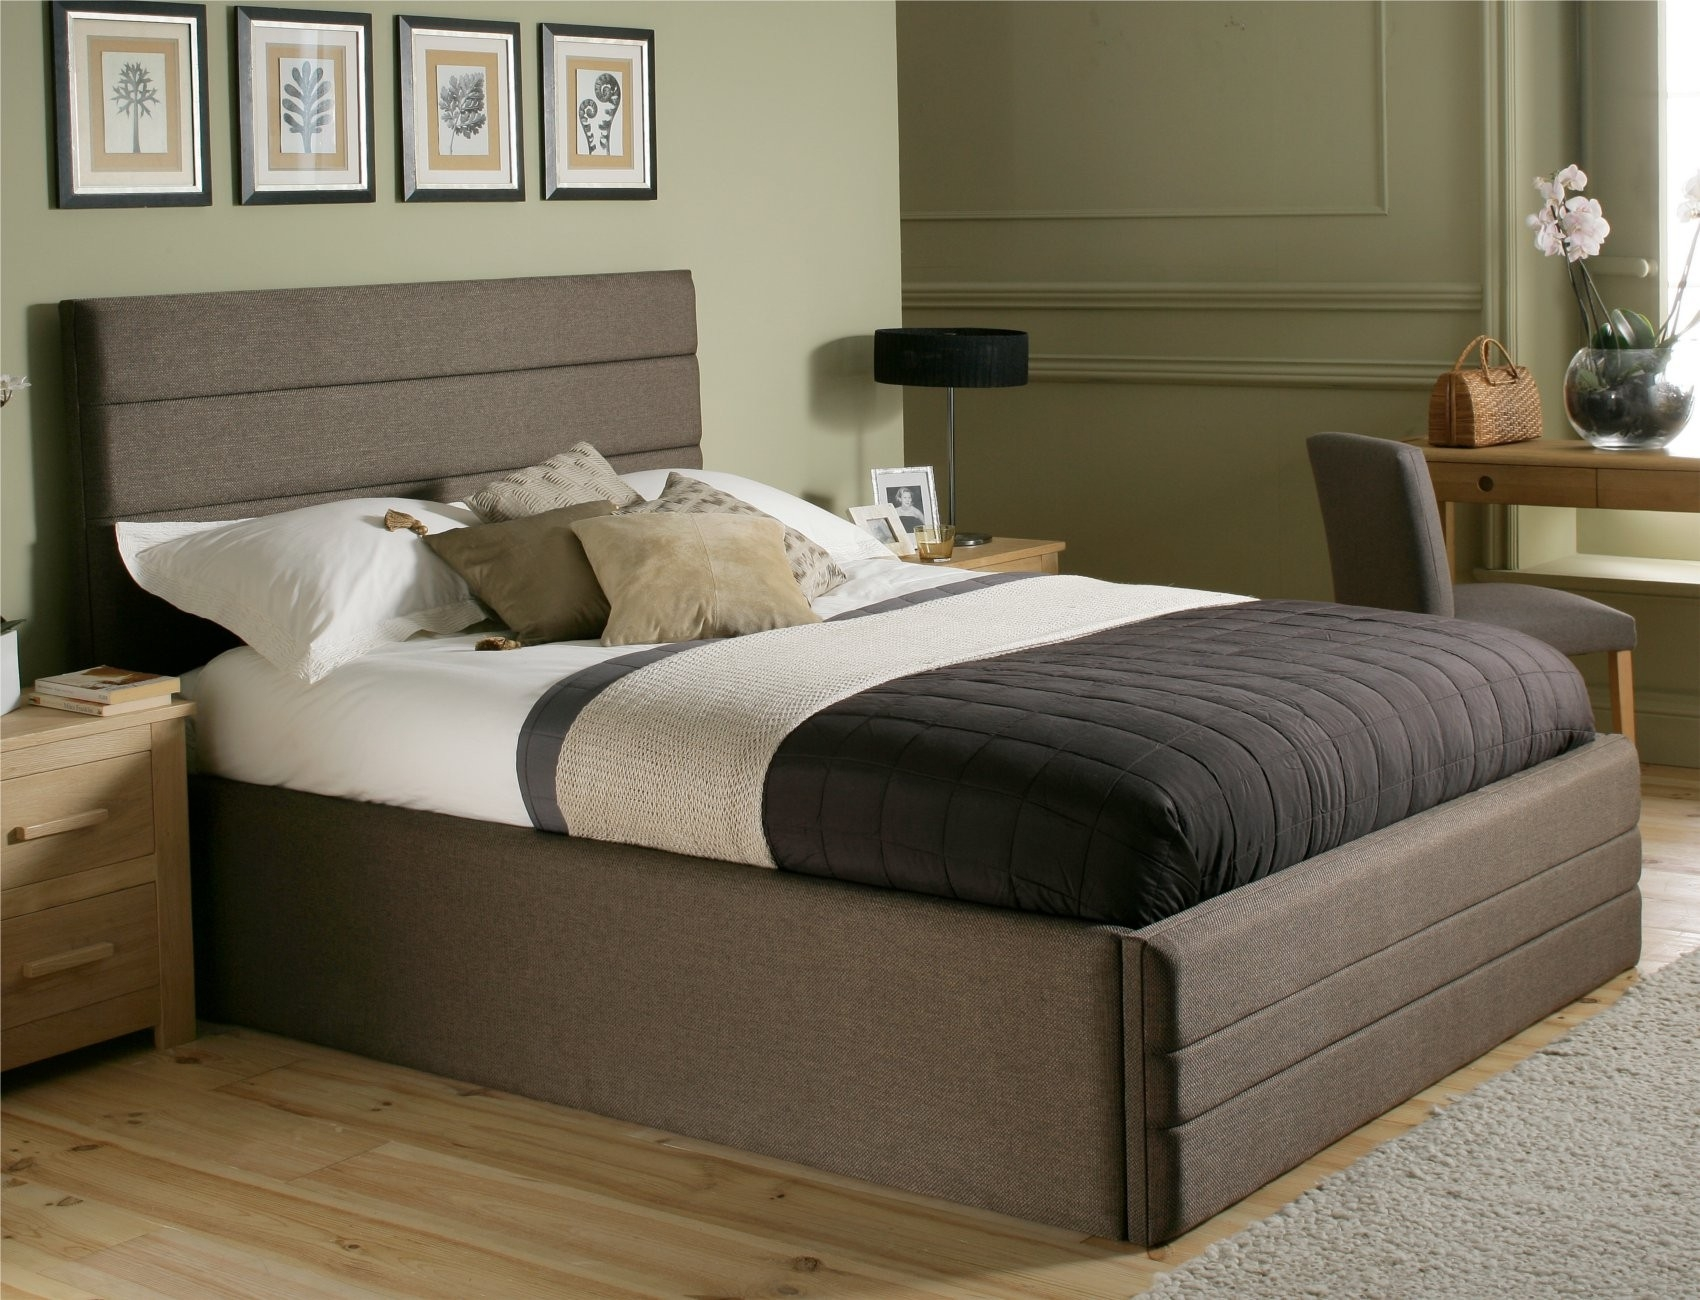 King Bed Frame And Mattress Setbed frame and mattress set king metry chick decoration